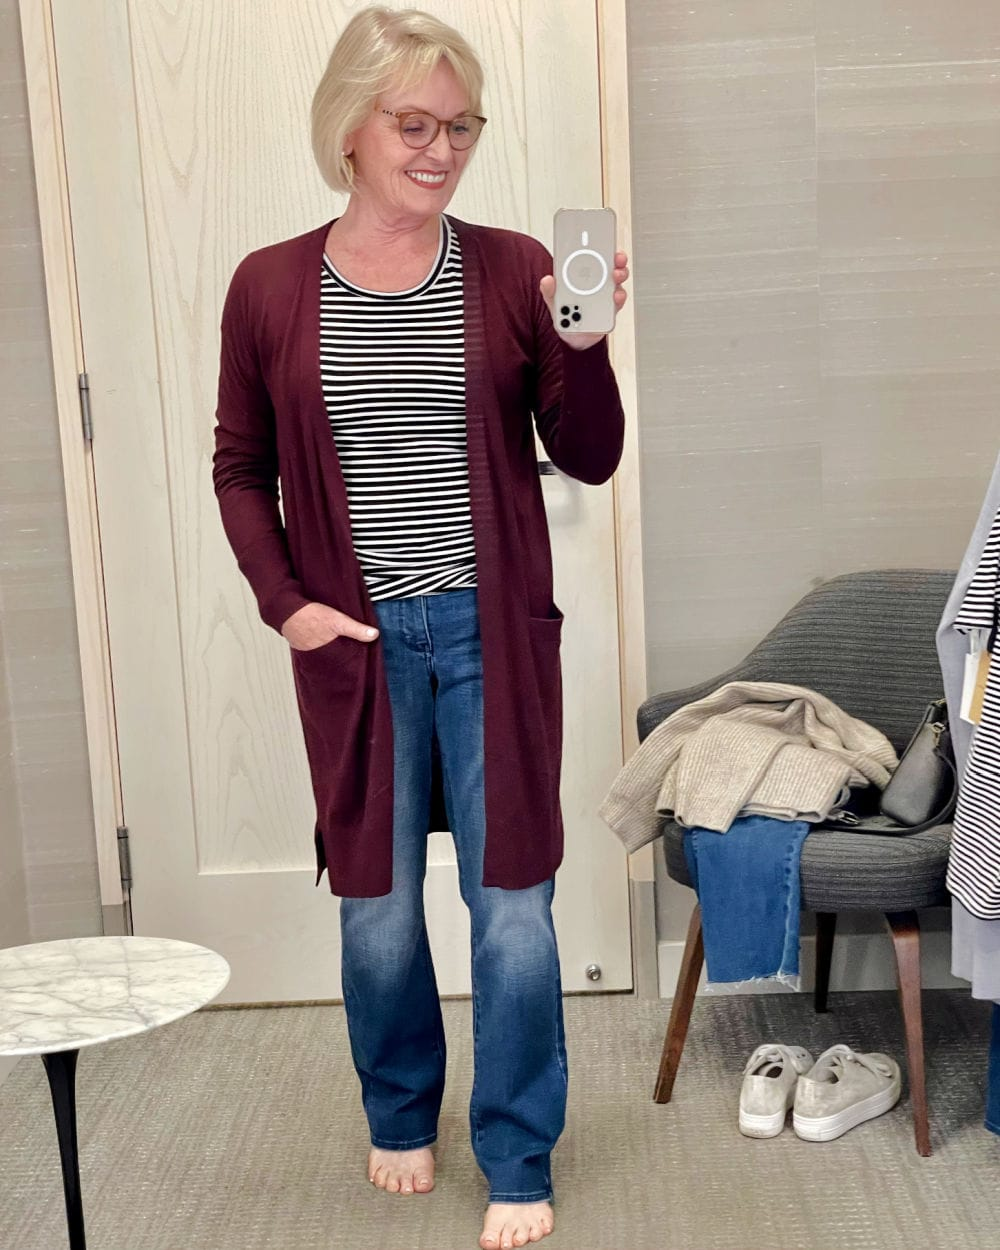 woman wearing wine colored cardigan and blue jeans